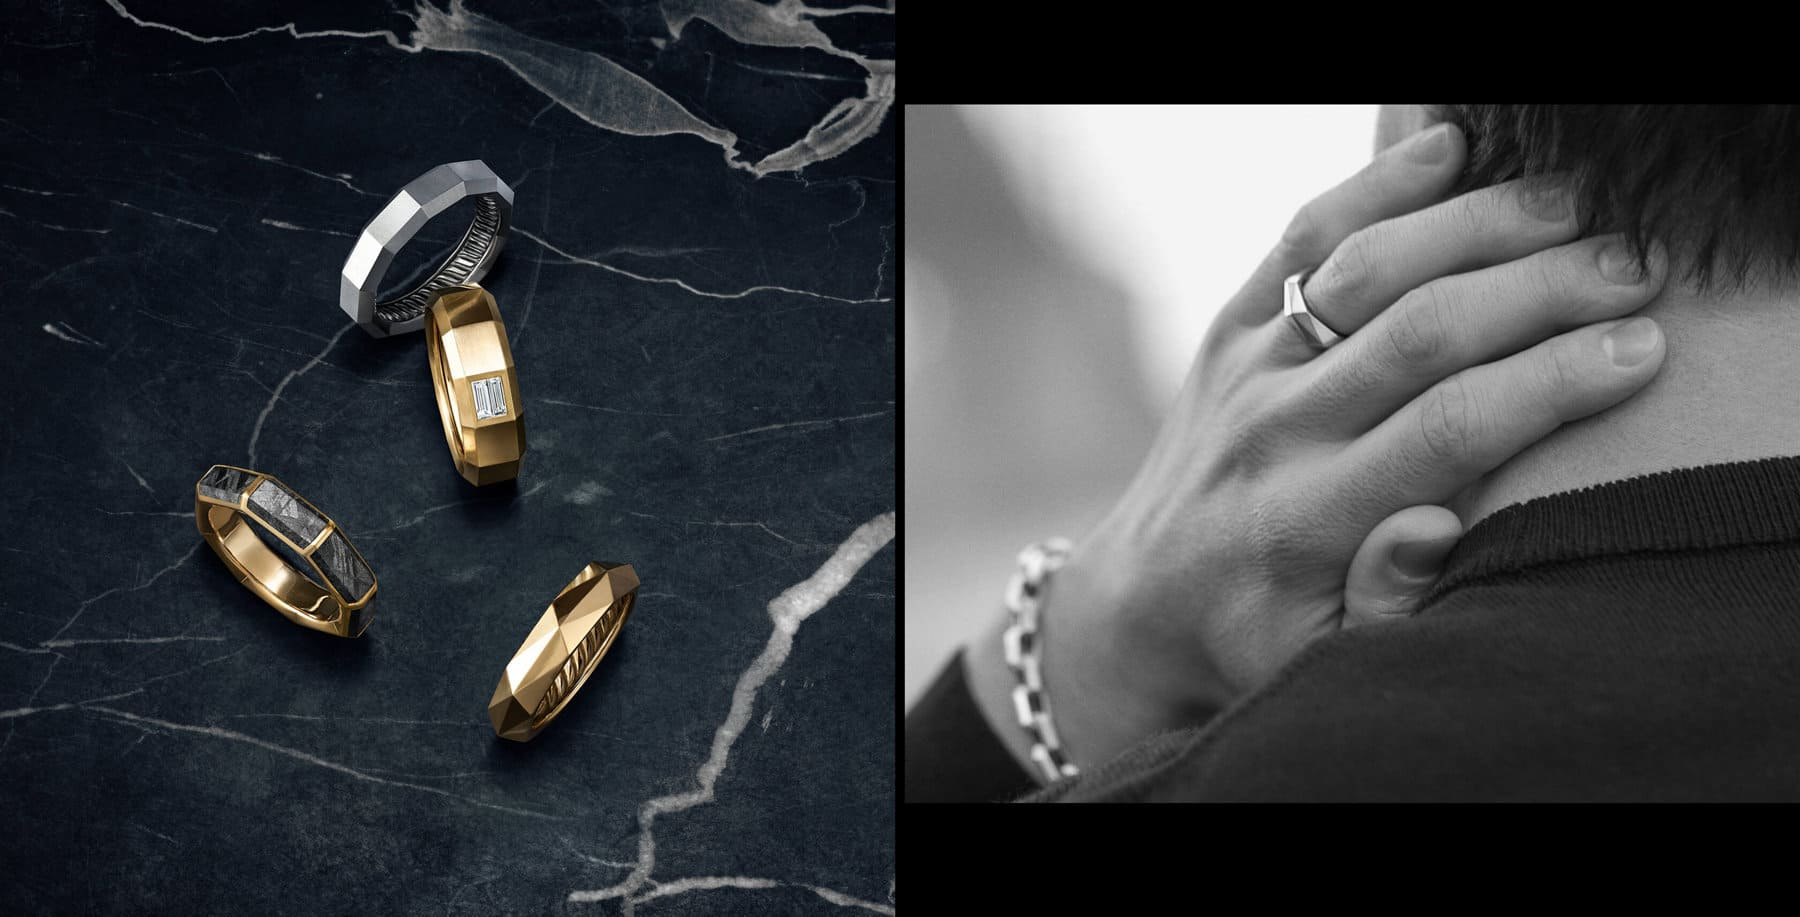 A color photograph shows four David Yurman Faceted Collection wedding bands atop a dark, marbled stone surface. The bands are crafted from grey titanium, 18K yellow gold and white diamonds, 18K yellow gold, or 18K yellow gold with meteorite.A black-and-white photo shows a man with his hand on the back of his neck. He is wearing a David Yurman Faceted band and a Chain bracelet.